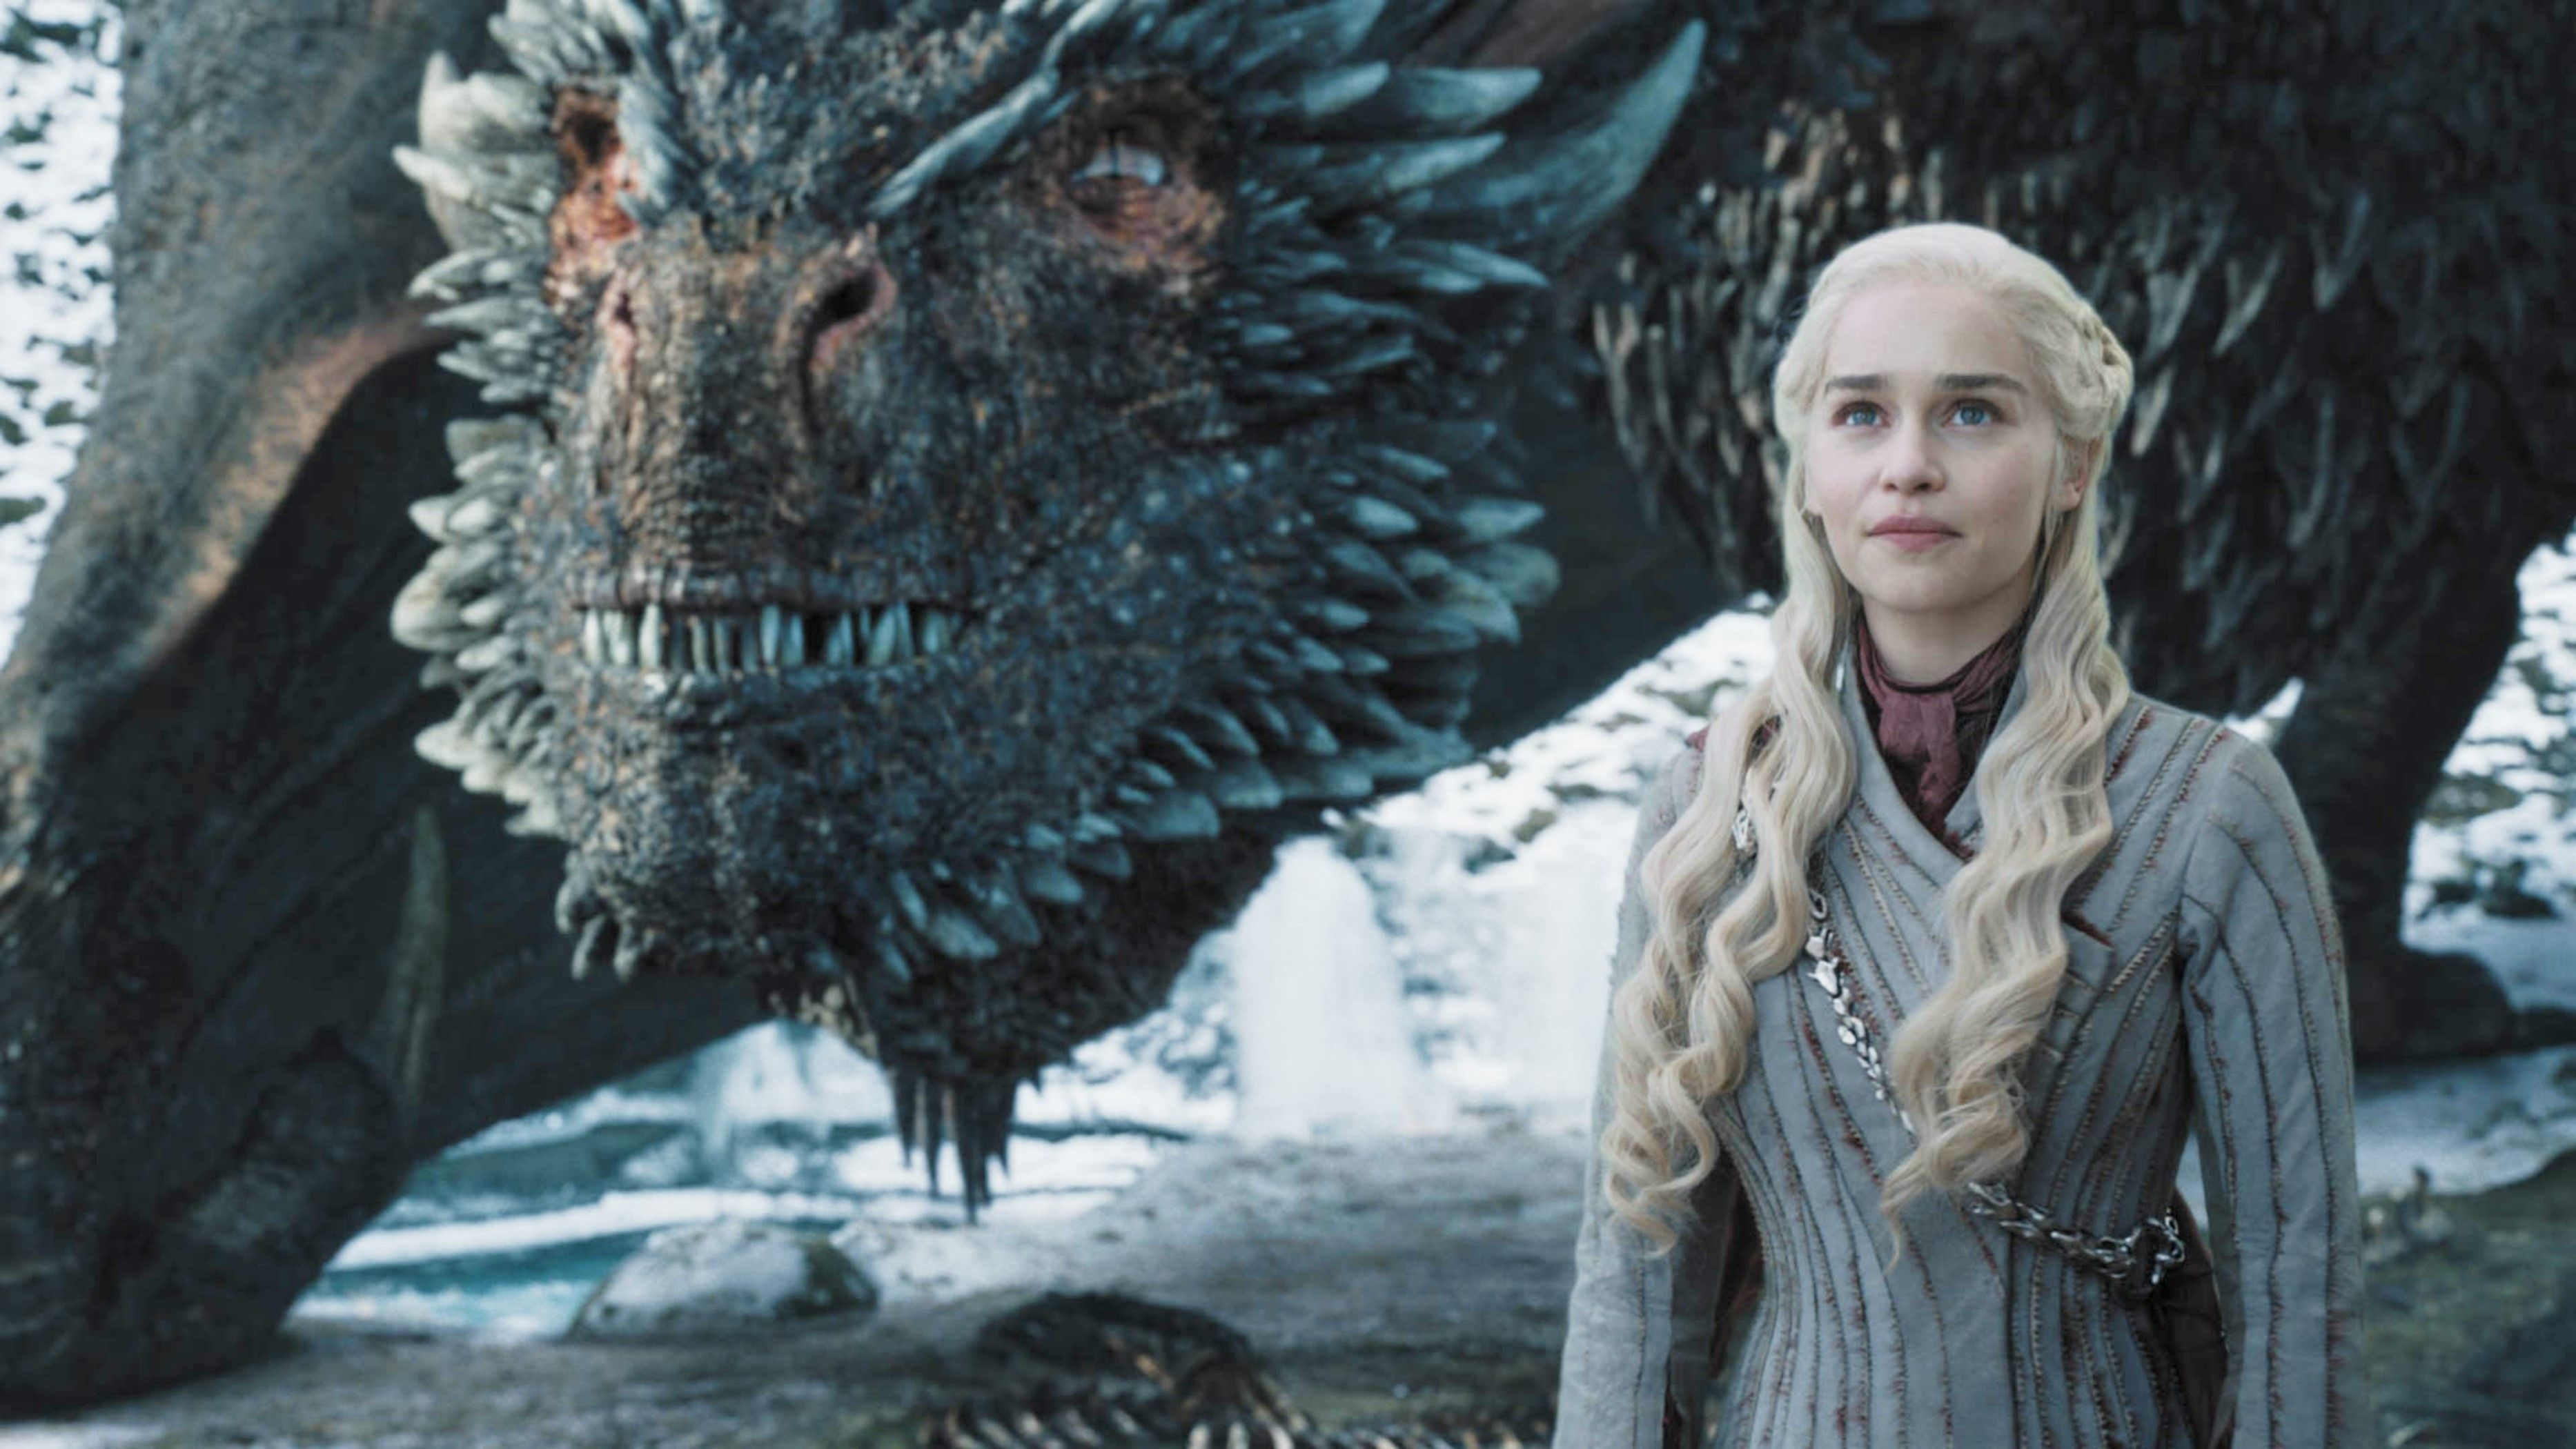 Where Does Drogon Take Daenerys' Body at the End of 'Game of Thrones'?